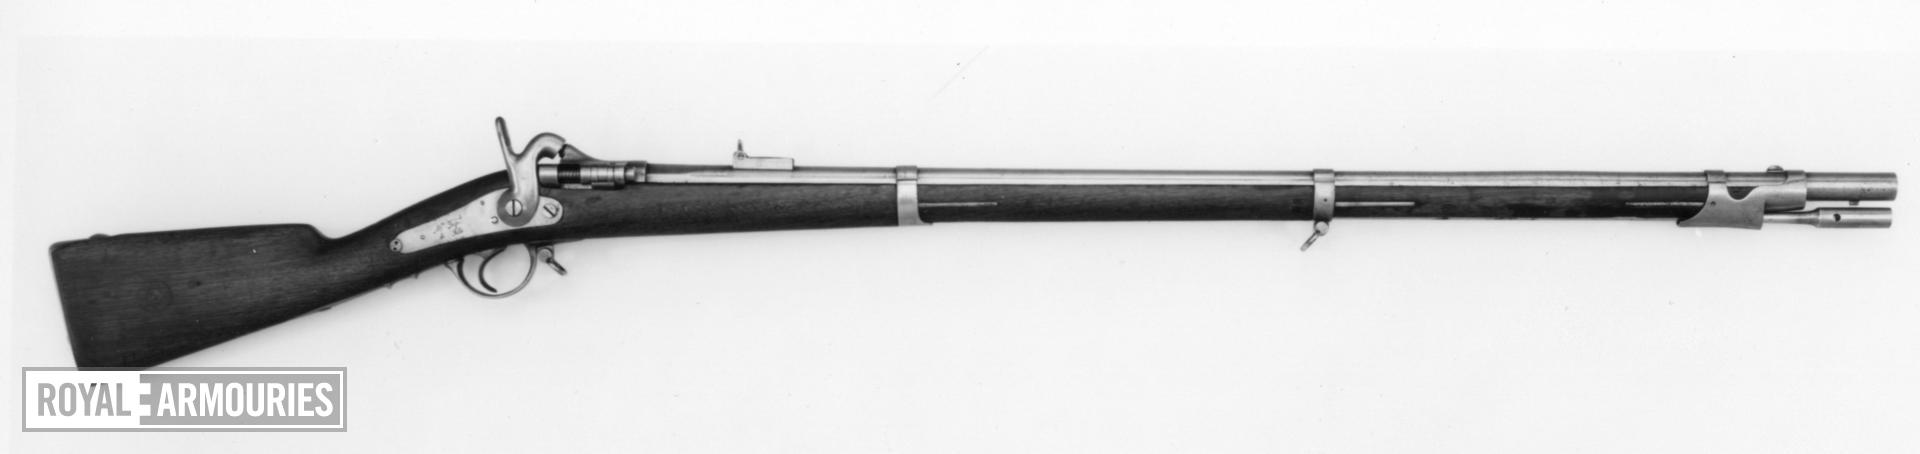 Centrefire breech-loading military rifle - Tabatiere system